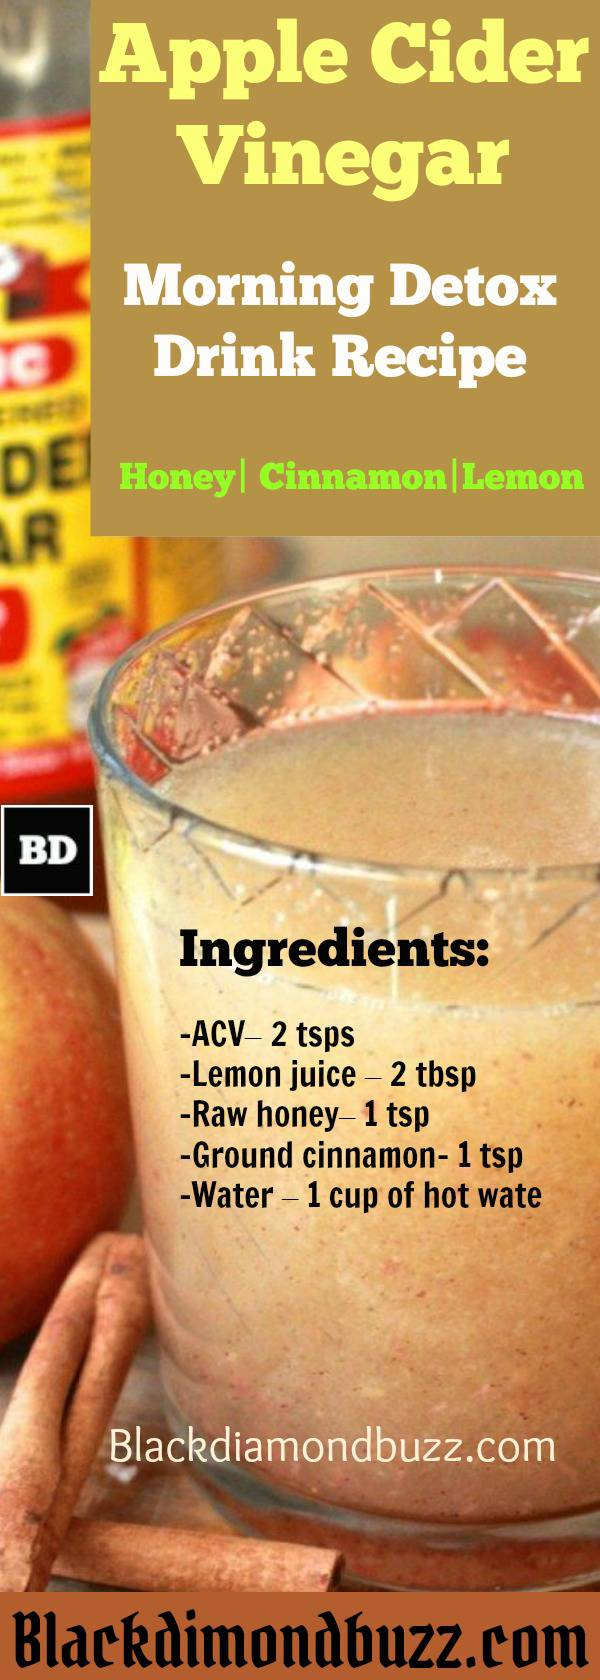 Apple Cider Vinegar Detox Drink Recipe Honey Cinnamon And Lemon For Fat